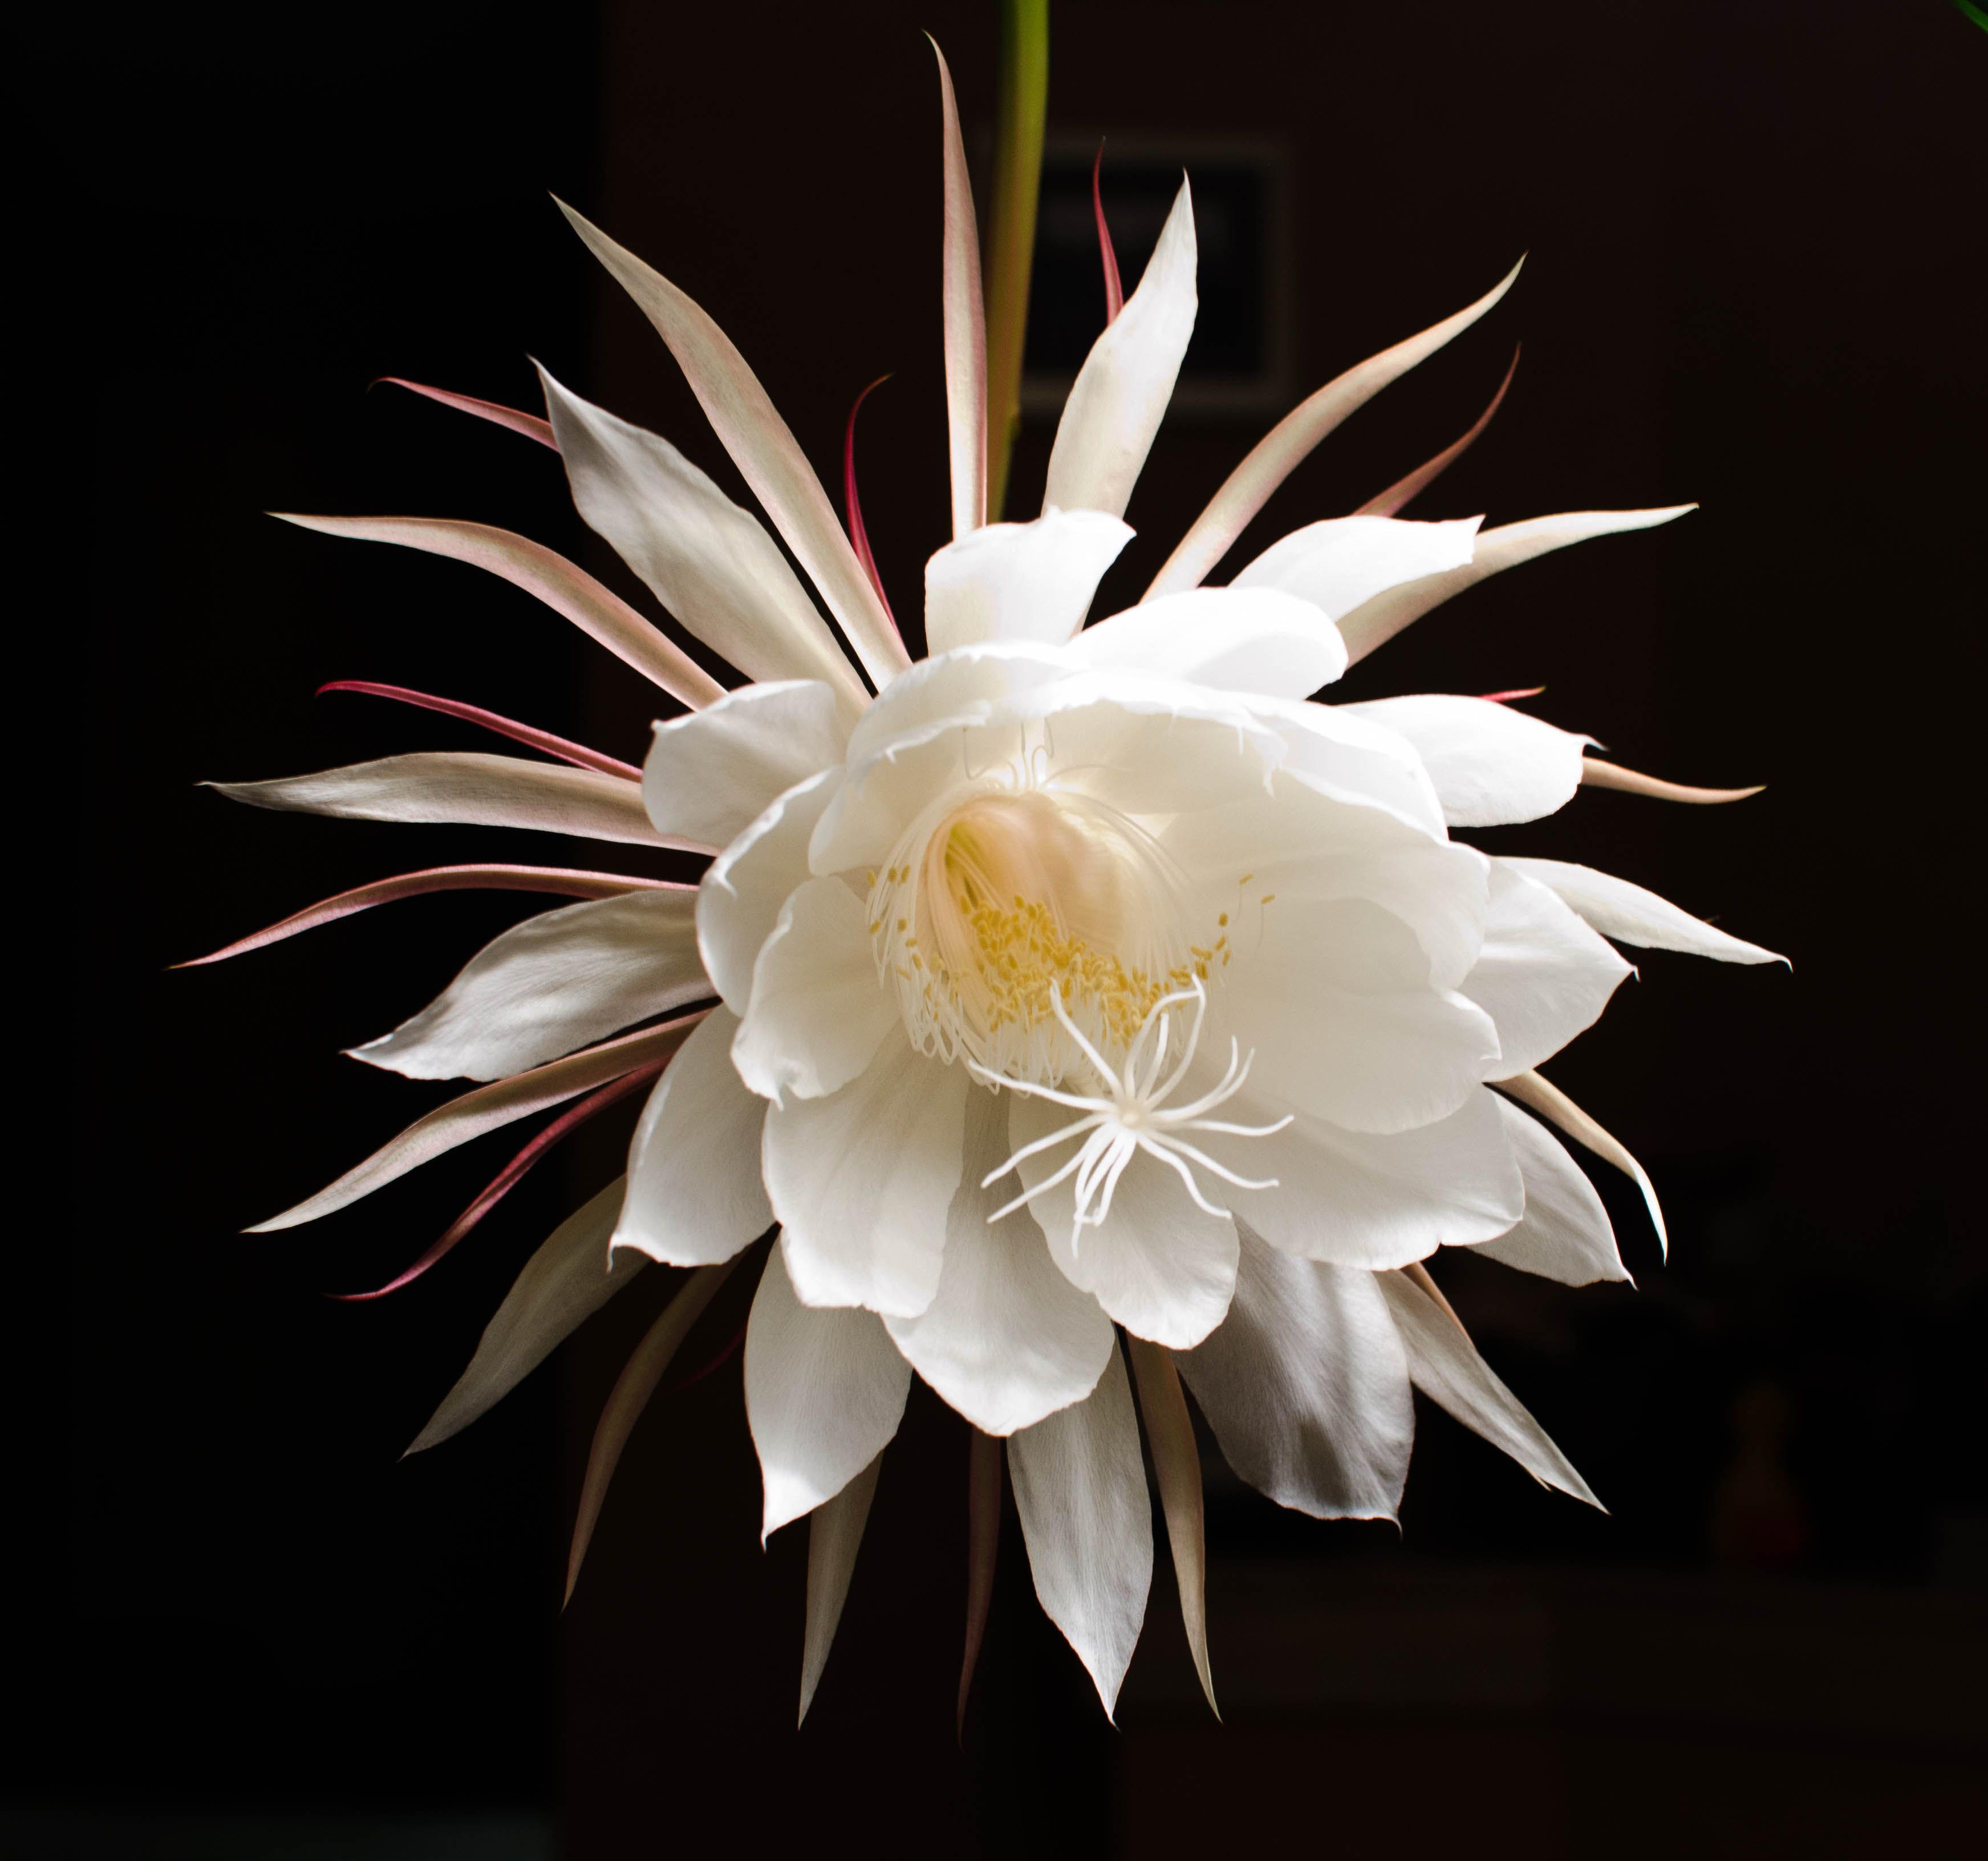 Night Blooming Cereus From the homeliest of plants es the Princess o